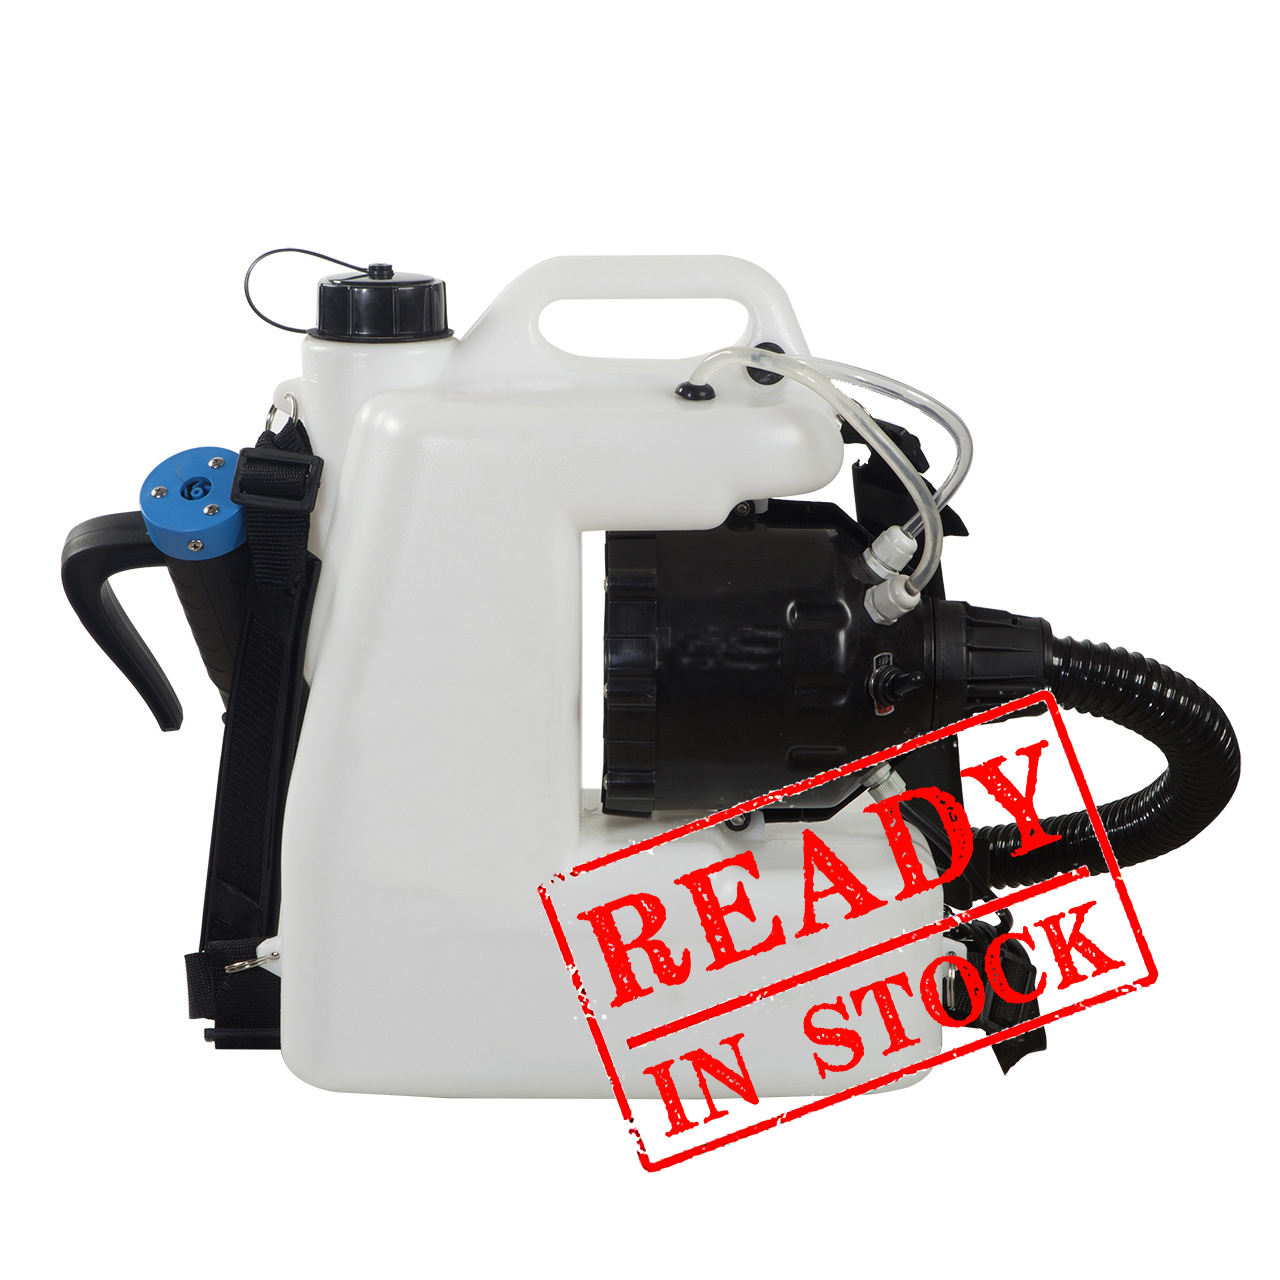 NEW IN STOCK FOR UK!! 12L ULV Cold Fogger 220V Backpack Electric ULV Sprayer for Office, Hotel Disinfecting ULV005